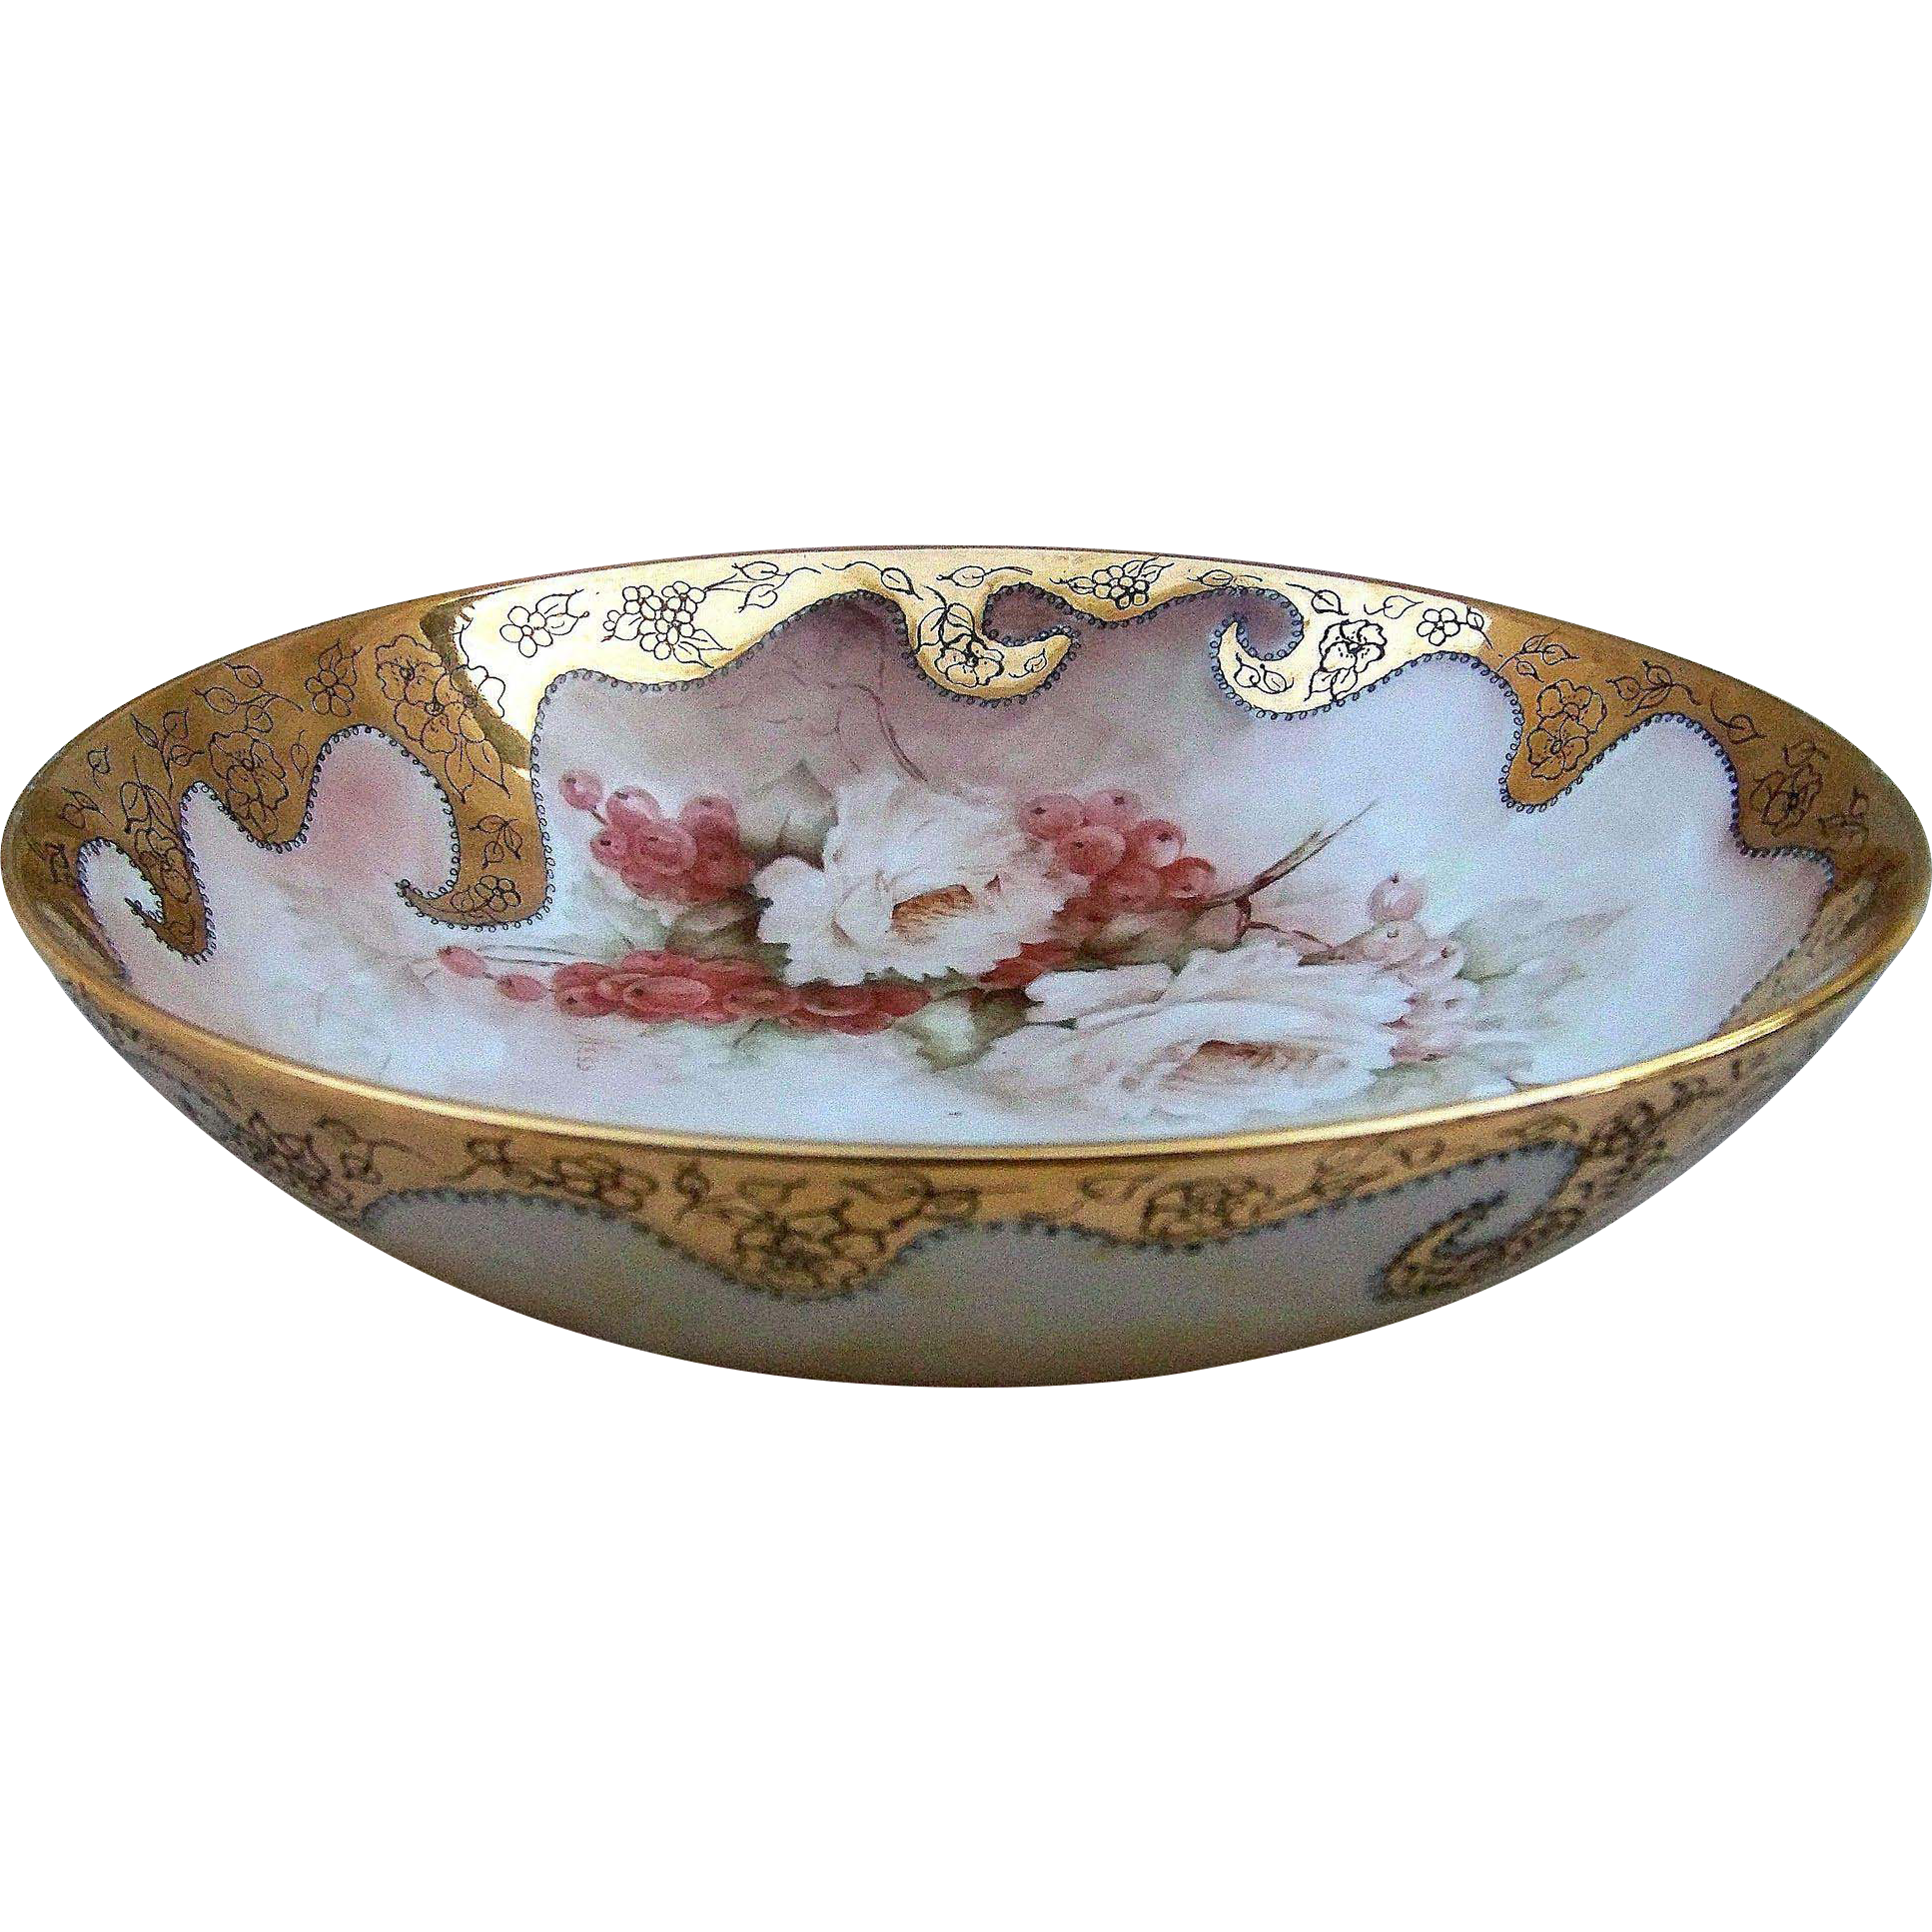 "Beautiful Bavaria Hand Painted ""White Roses & Red Currant"" 10"" Floral & Fruit Bowl by the Artist, ""Hess""."